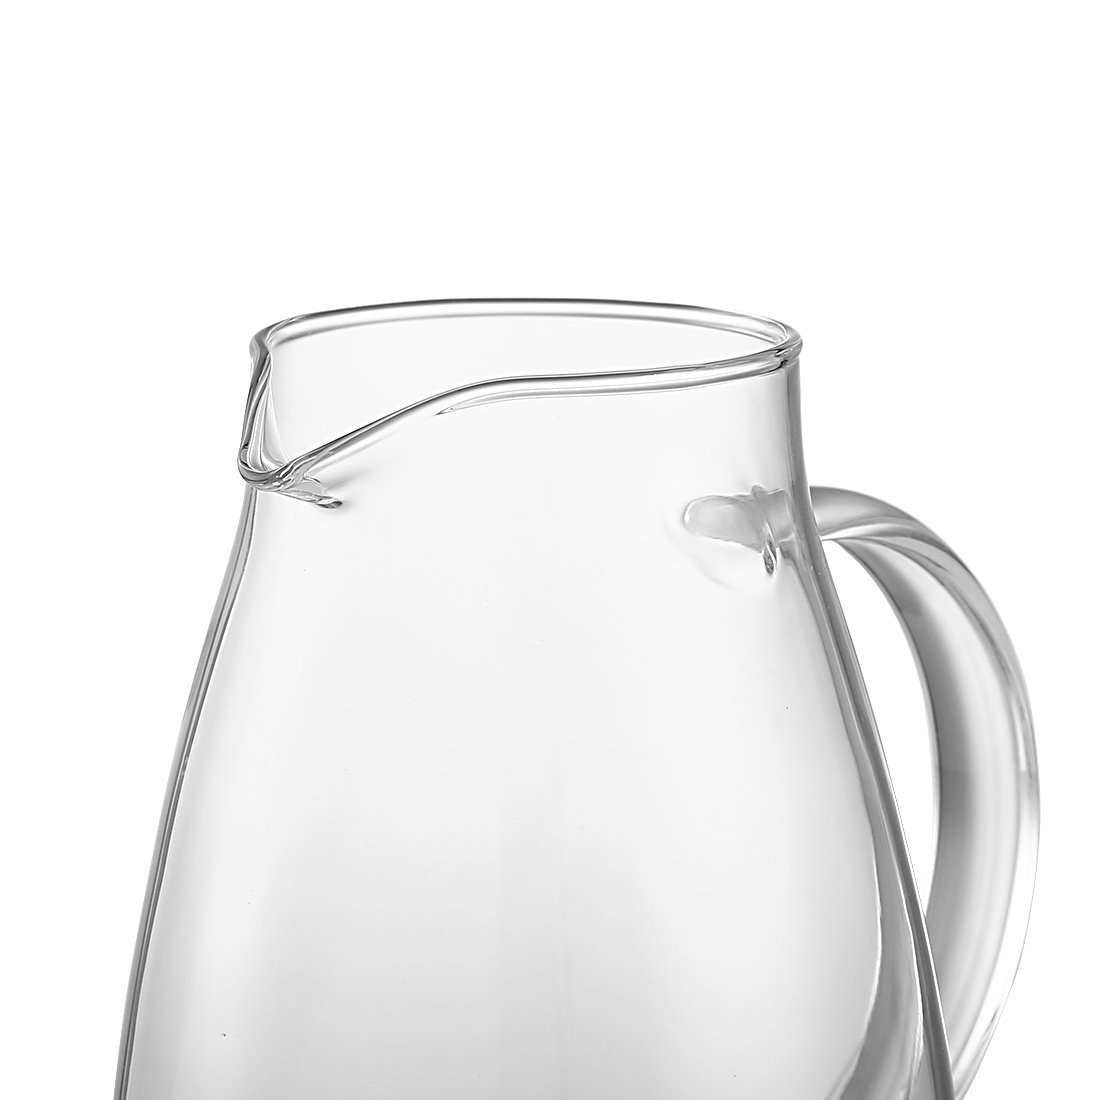 JIAQI 68 Ounces Glass Pitcher with Stainless Steel Lid, Hot/Cold Water Jug, Juice and Iced Tea Beverage Carafe by JIAQI (Image #5)